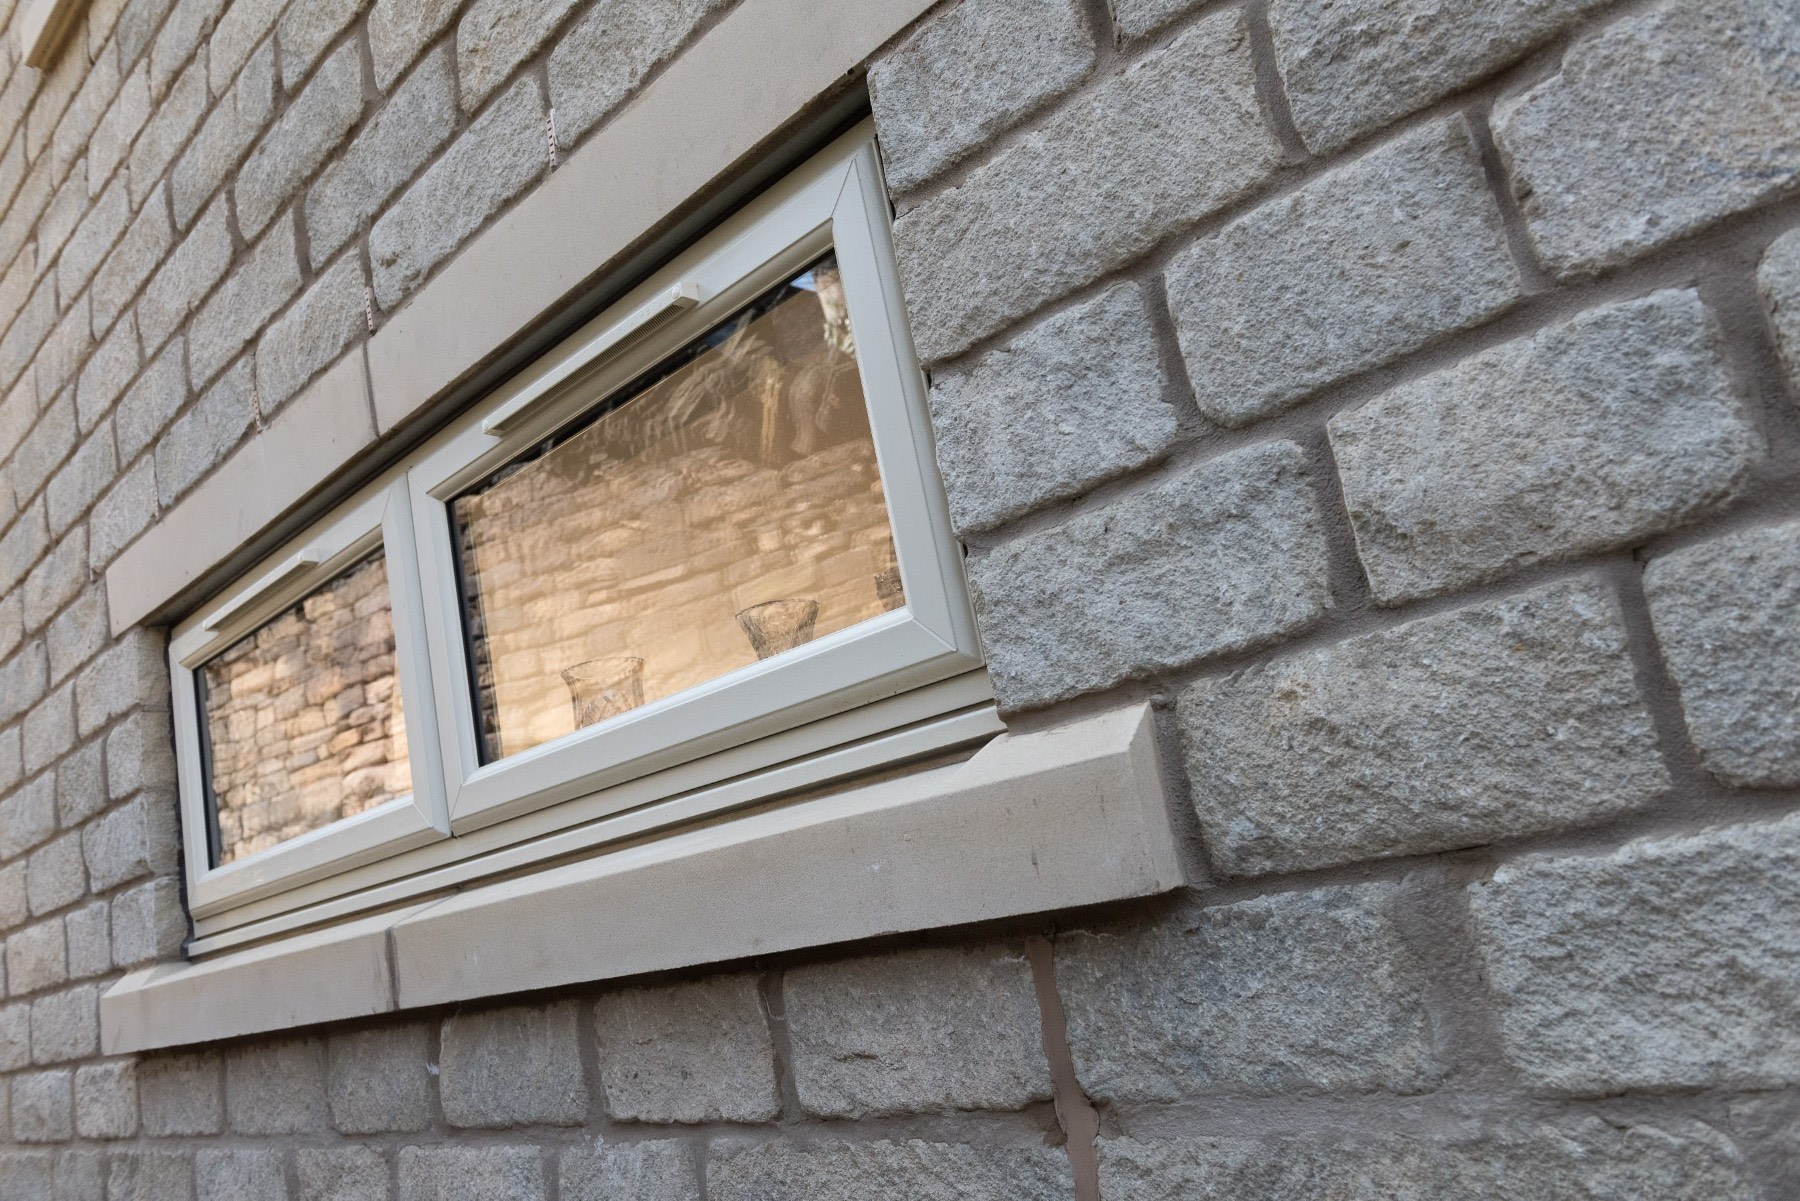 Local uPVC Window installer, Fleet, Hampshire